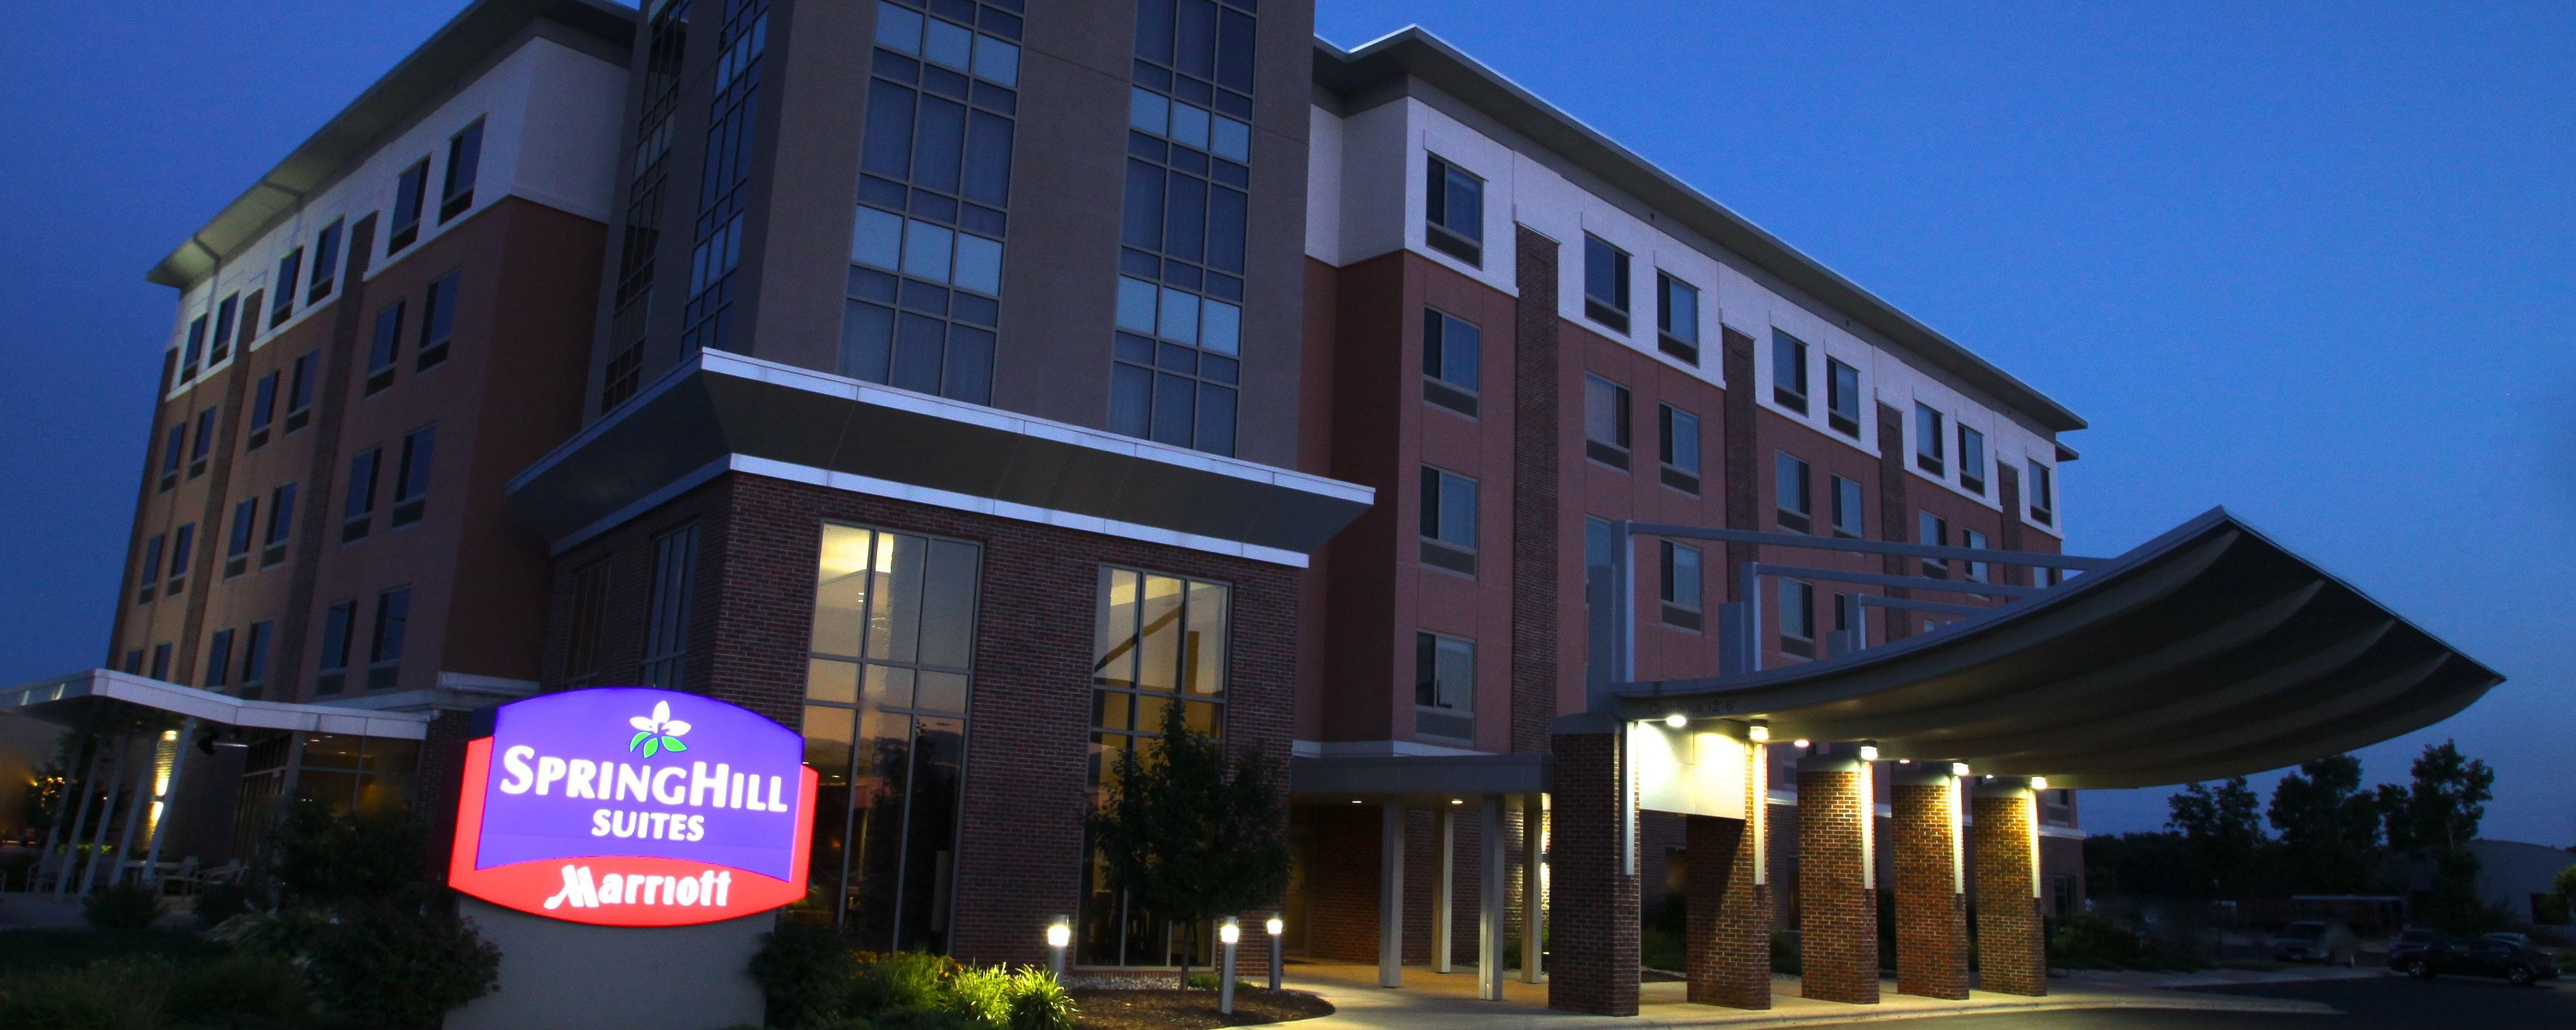 Springhill Suites Green Bay, Wisconsin